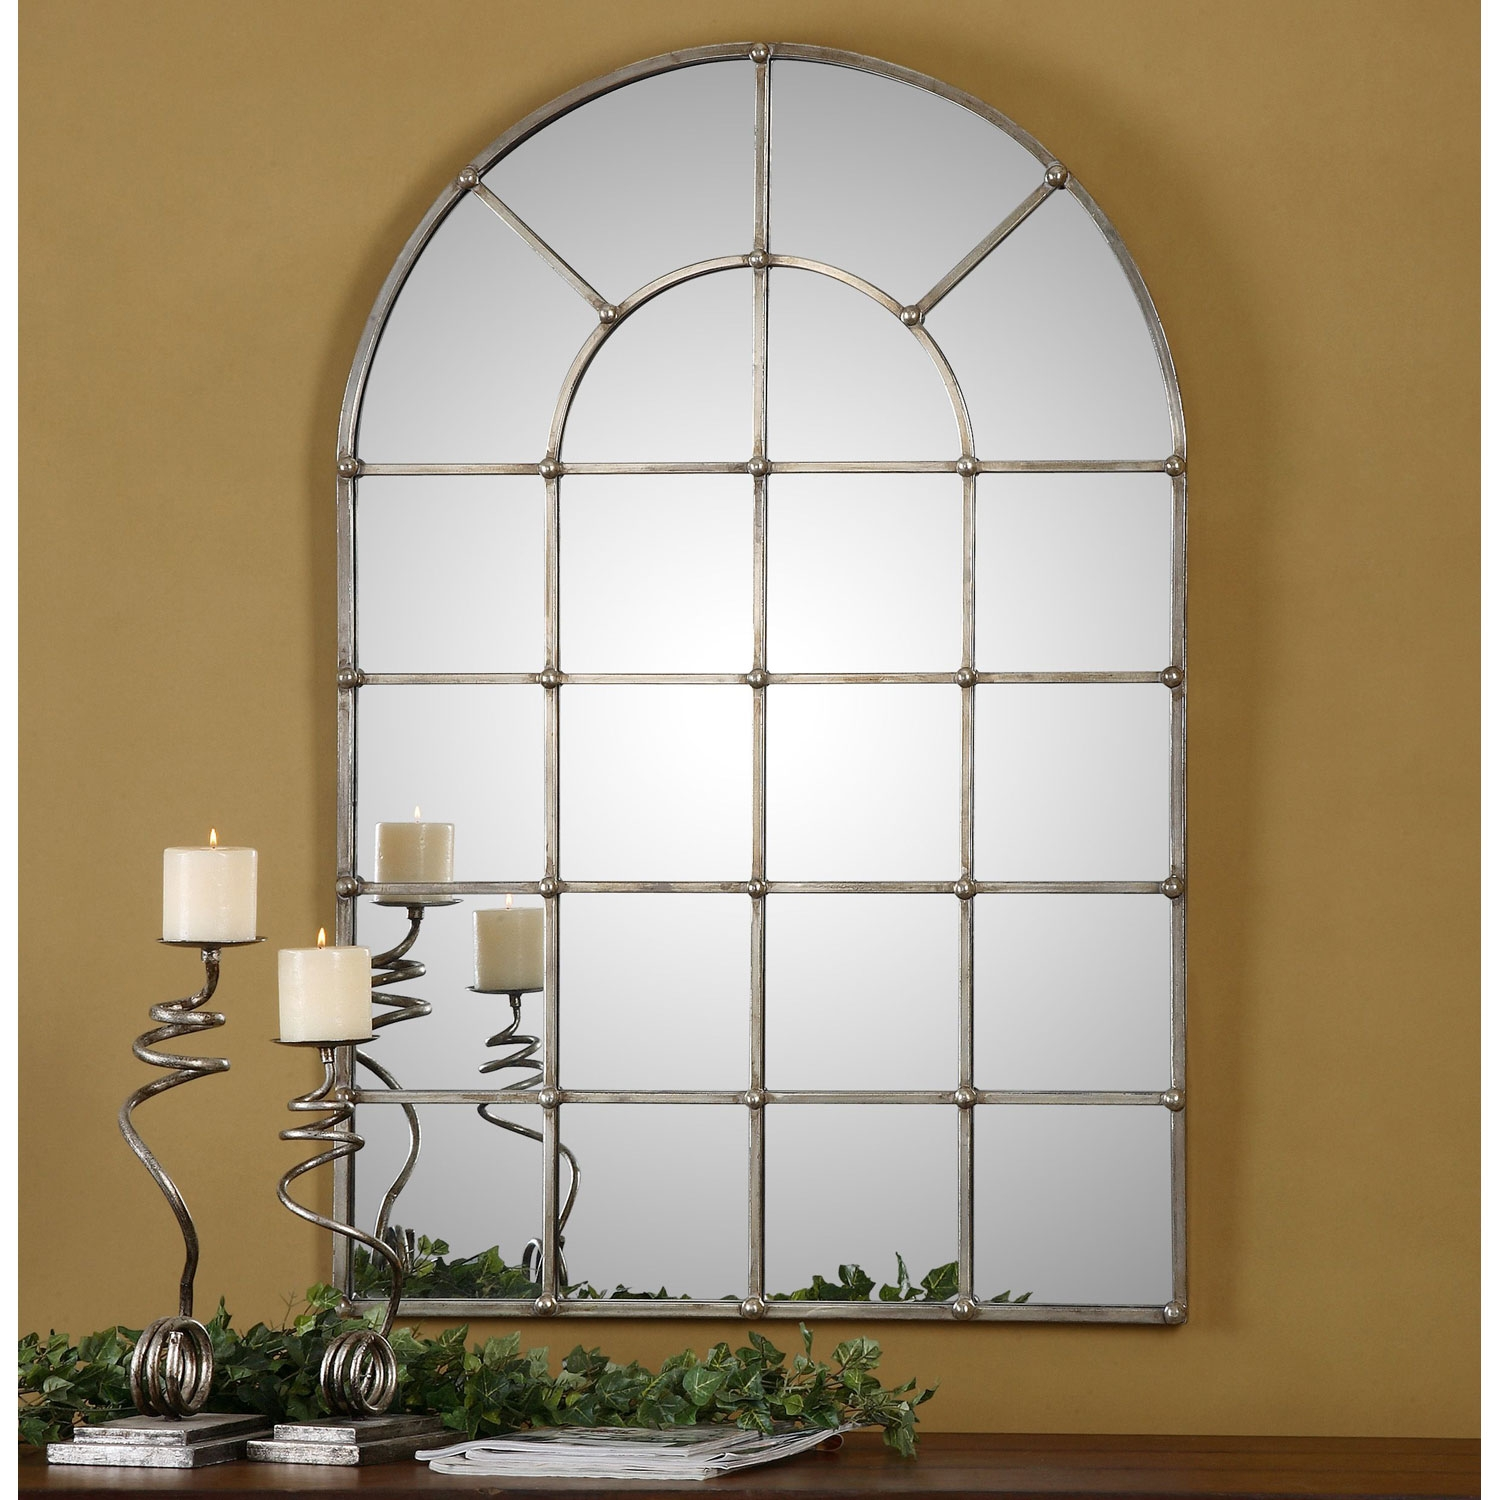 Barwell Forged Metal With Oxidized Plated Silver Arch Window With Regard To Window Arch Mirror (Image 9 of 15)